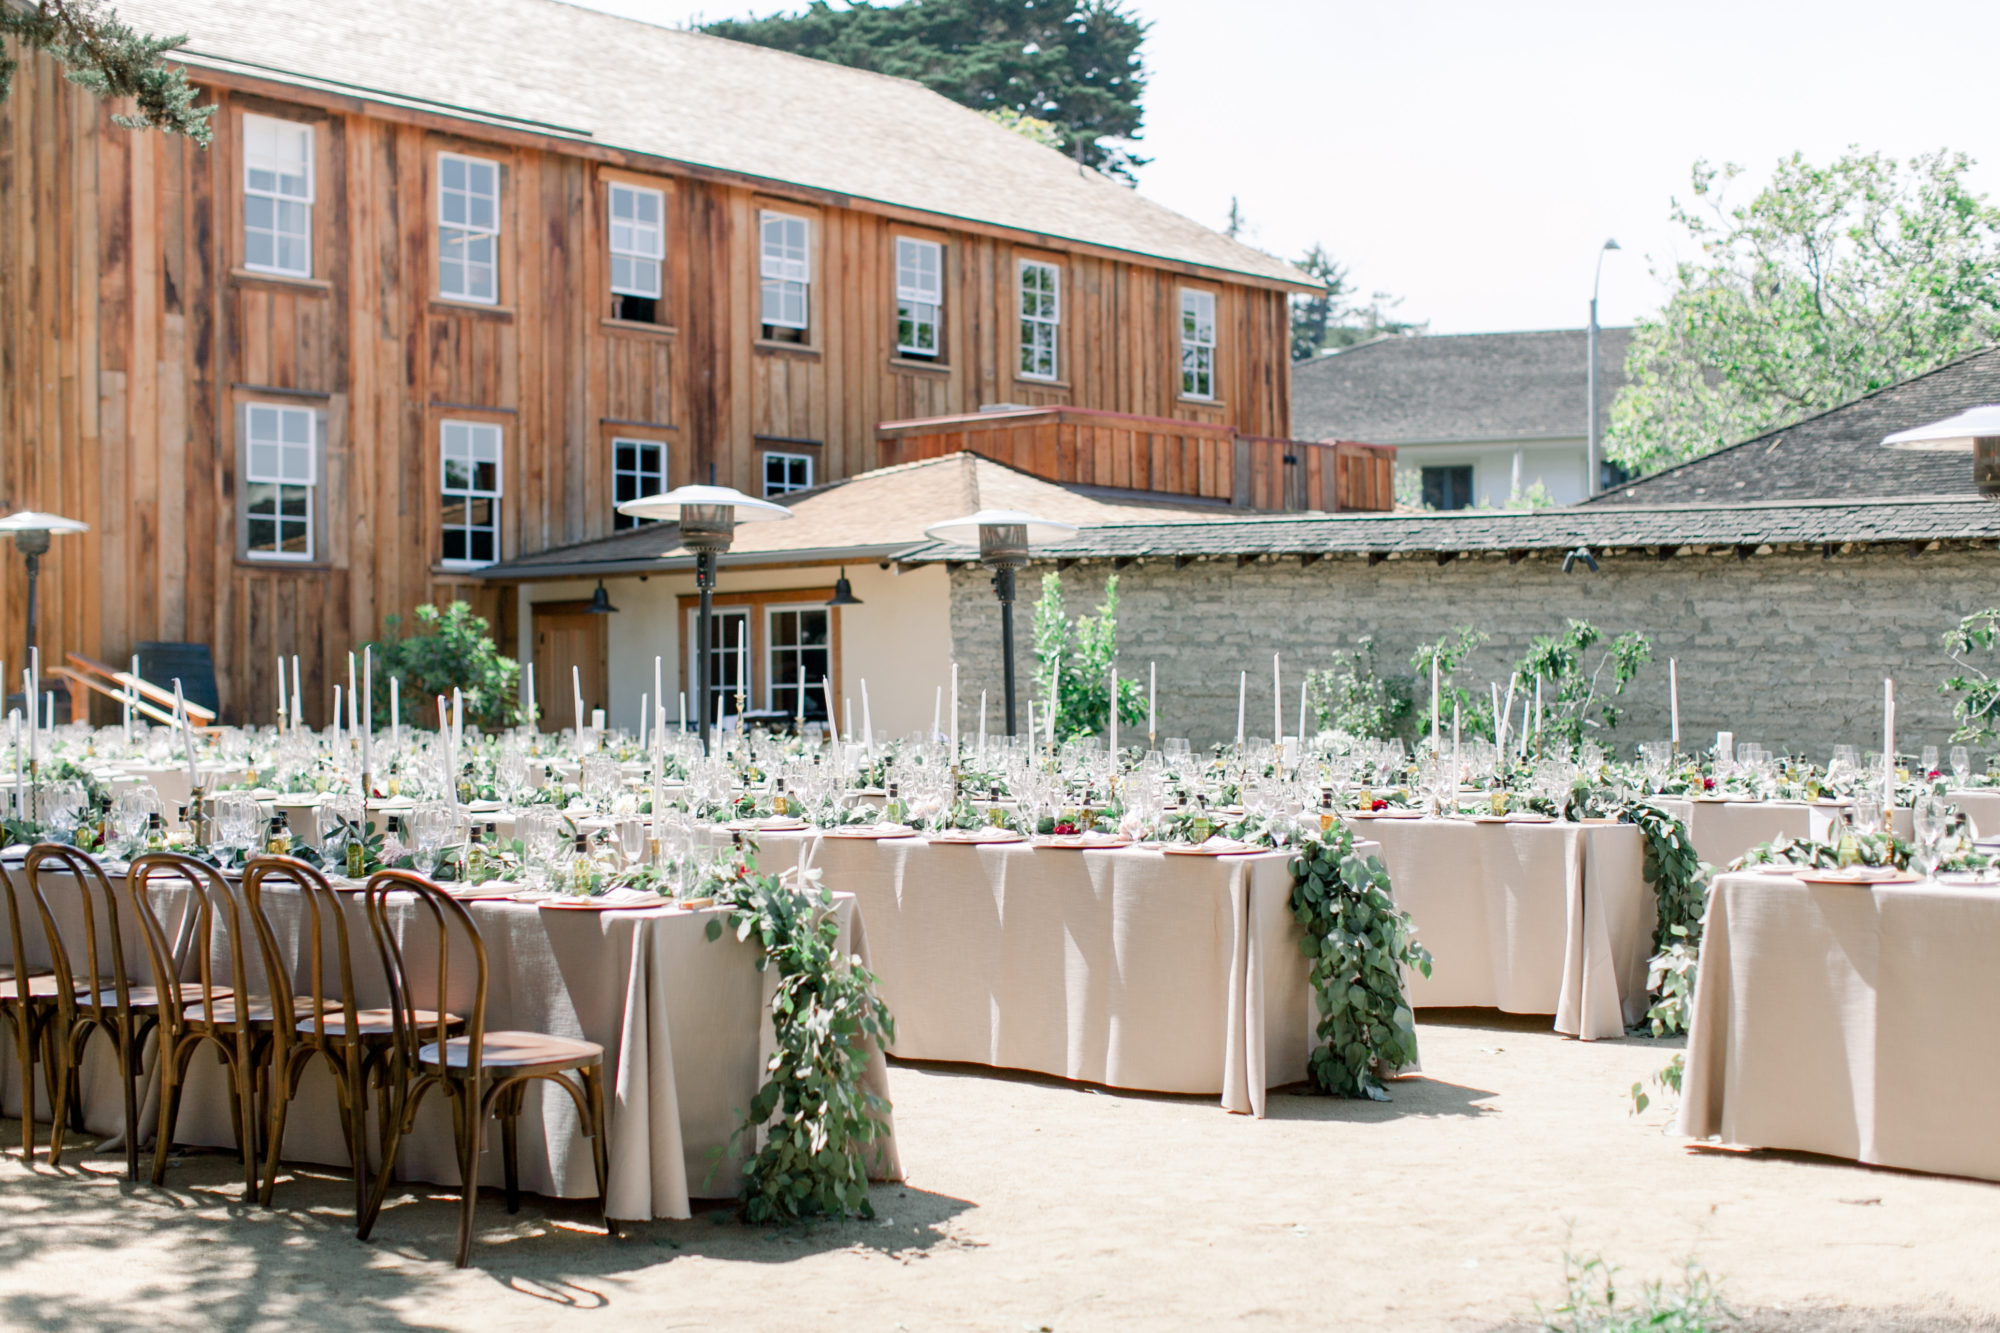 Ourdoor dining set up for wedding reception at Cooper Molera Barns Monterey